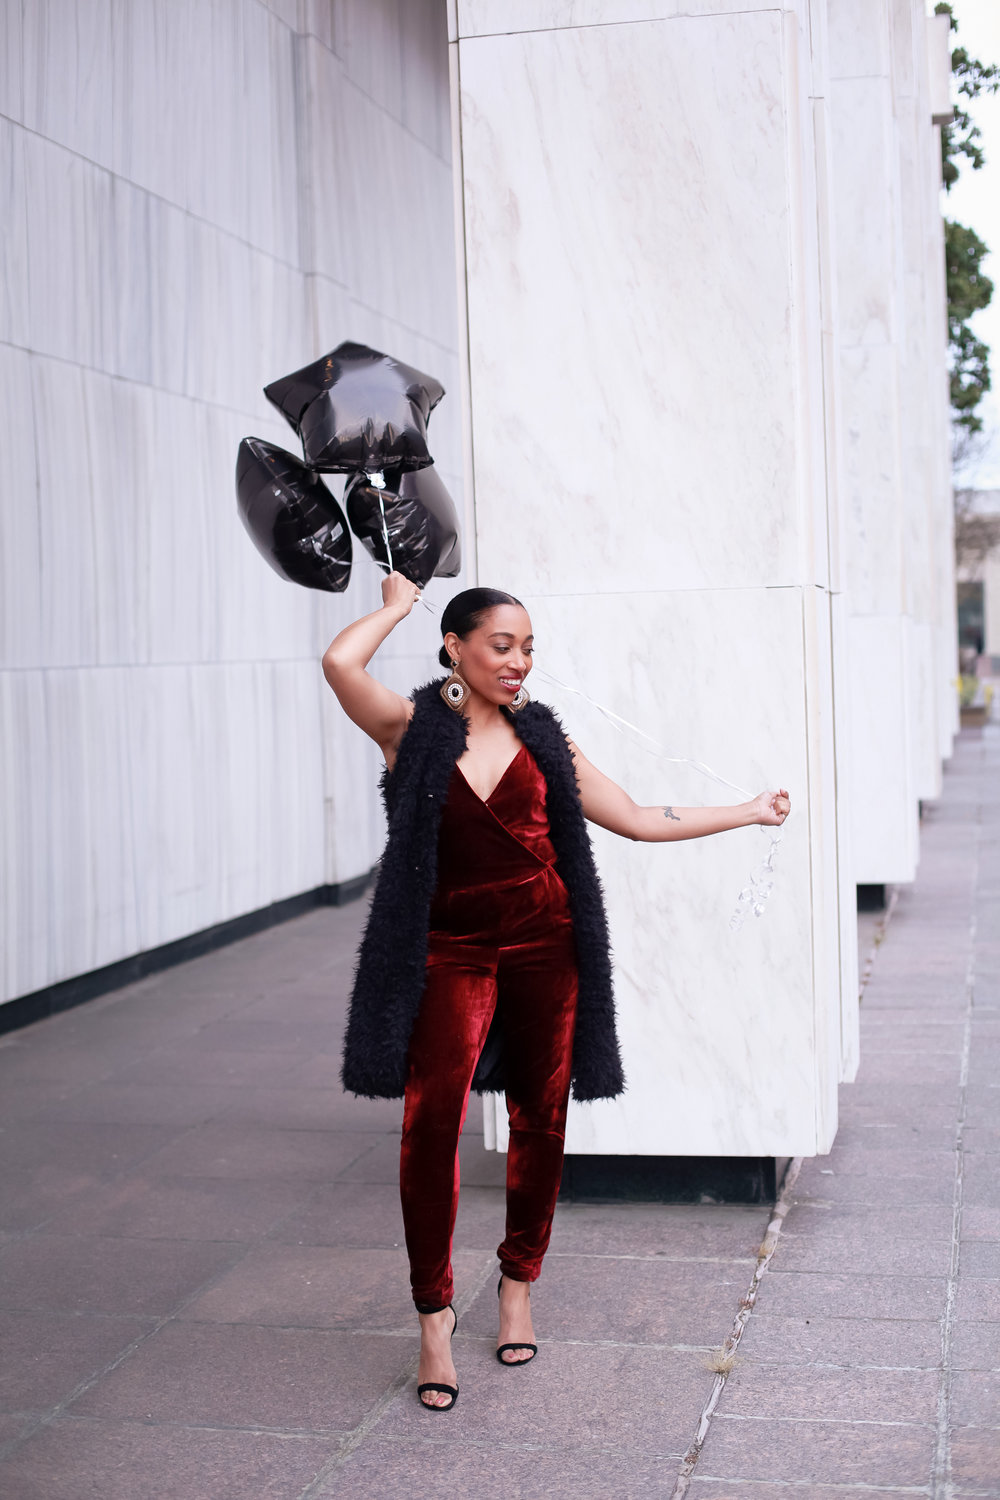 Andrea Fenise Memphis Fashion Blogger shares an outfit inspiration wearing a faux fur vest and velvet romper